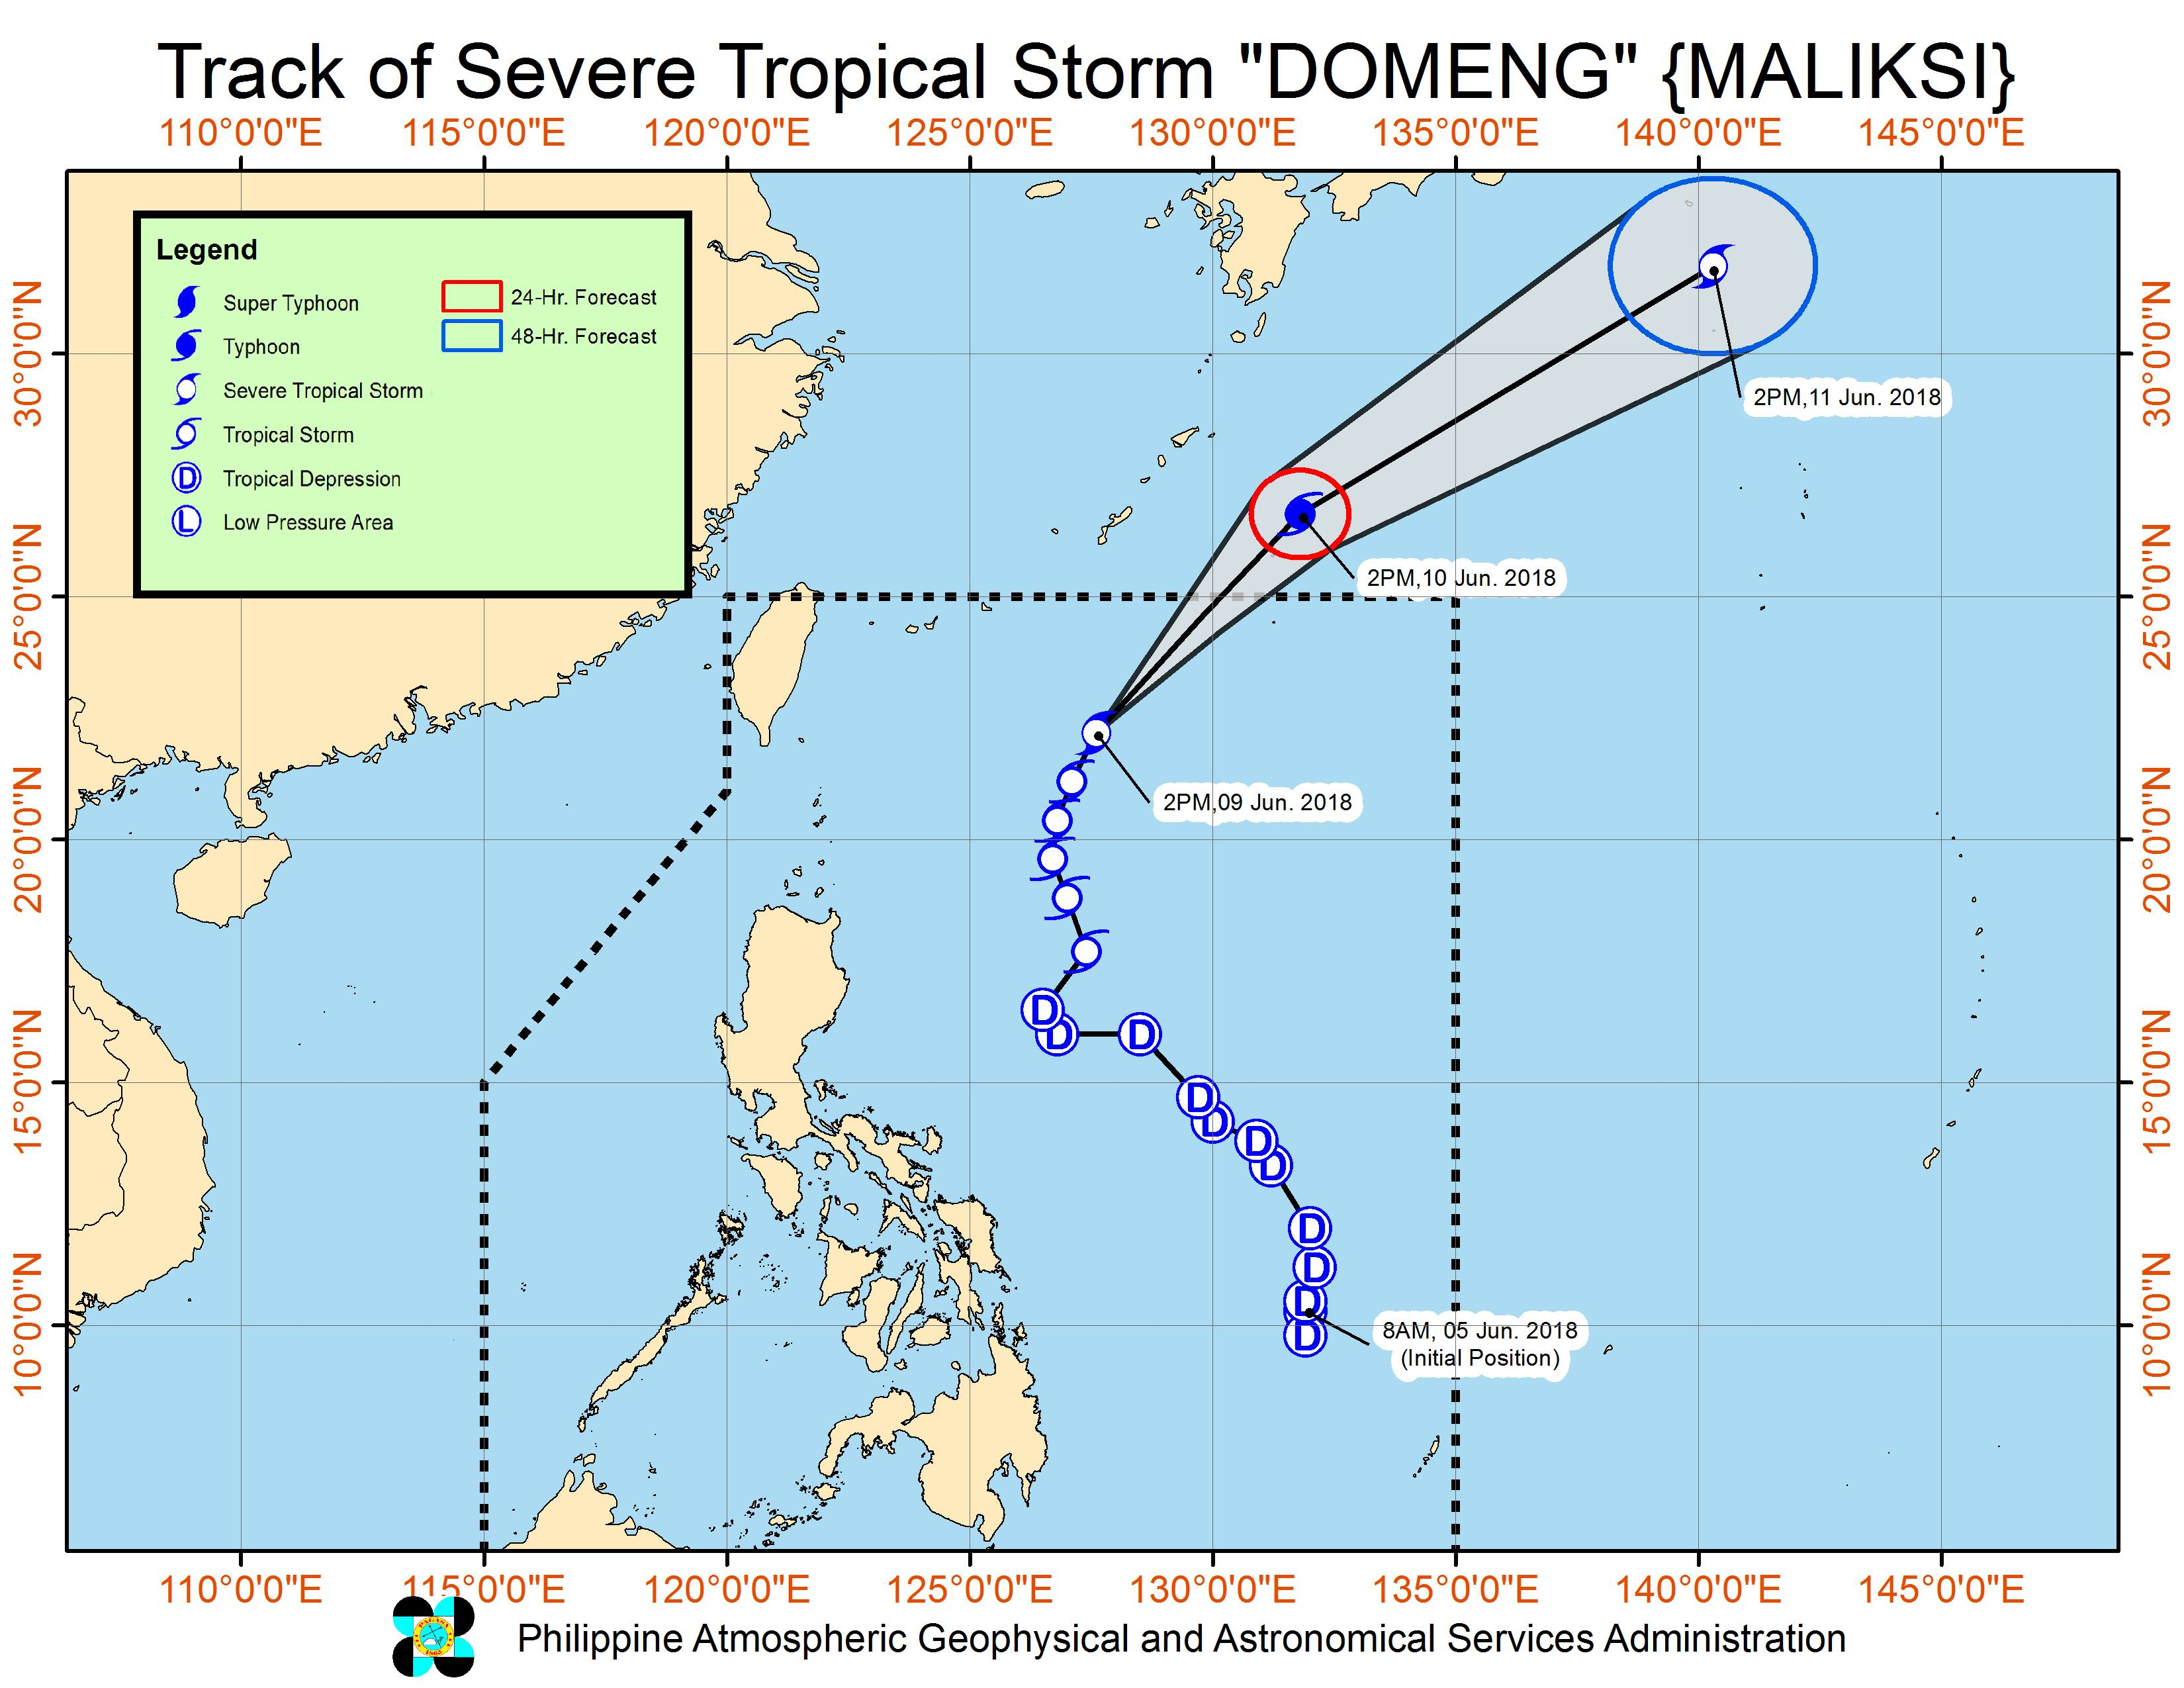 Forecast track of Severe Tropical Storm Domeng (Maliksi) as of June 9, 2018, 4 pm. Image courtesy of PAGASA